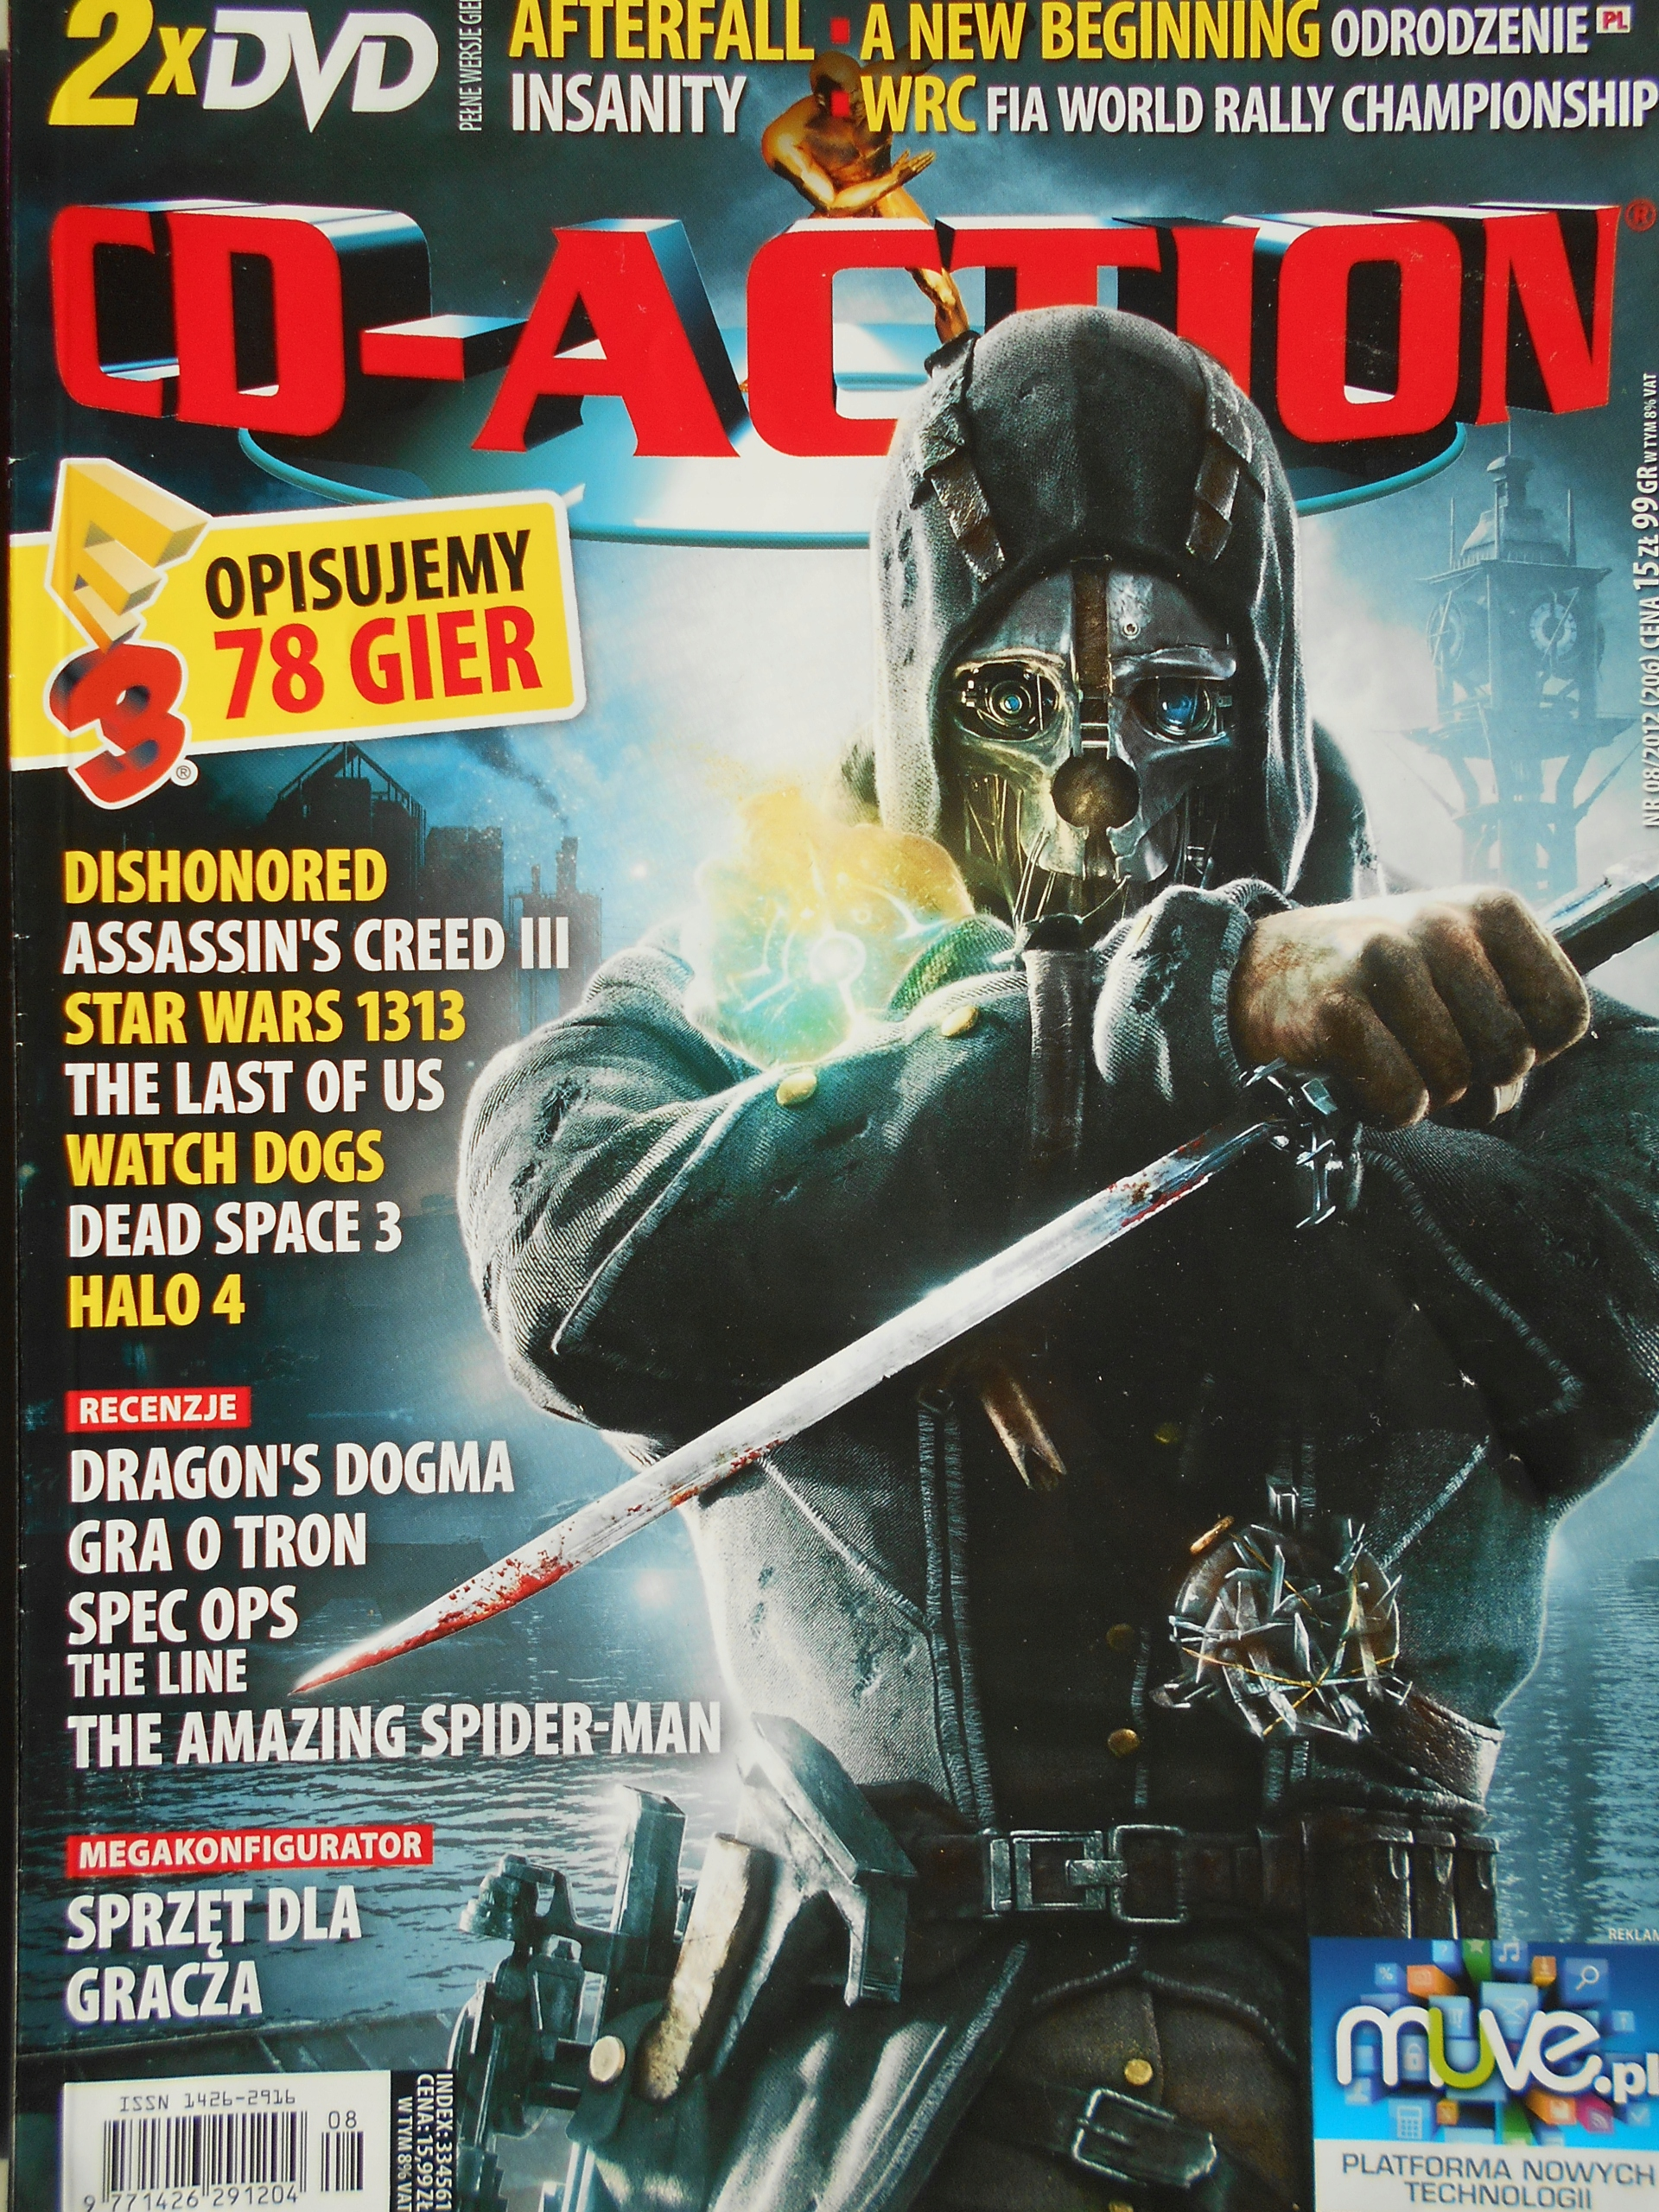 CD-ACTION * NR 08 / 2012